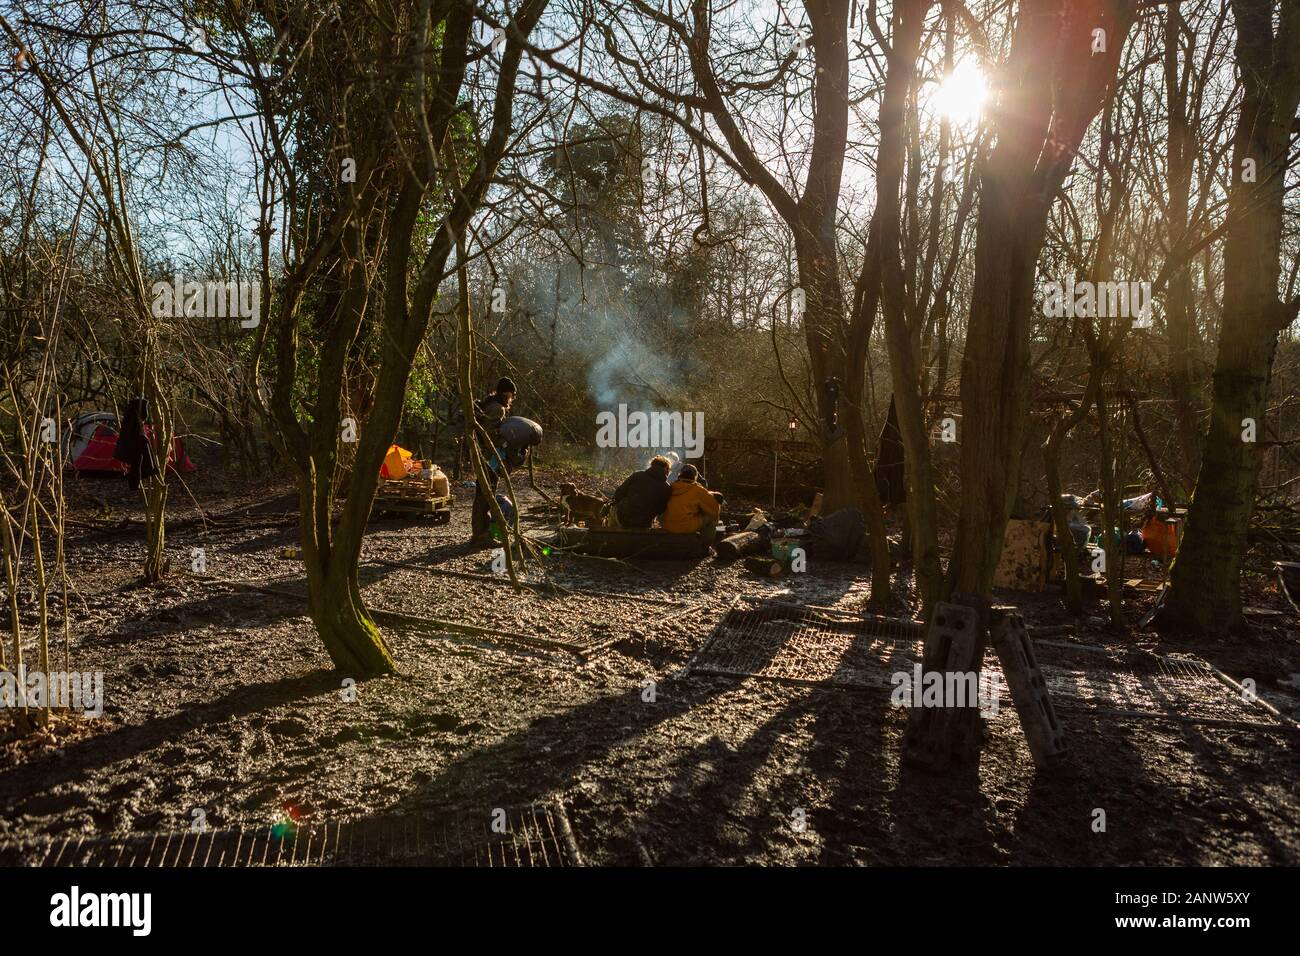 Harefield, UK. 19th Jan, 2020. Conservationists, climate protesters and environmentalists defy the High Court Injunction and stay on site in an attempt to stop the HS2 route and the loss of ancient woodland. Penelope Barritt/Alamy Live News Stock Photo